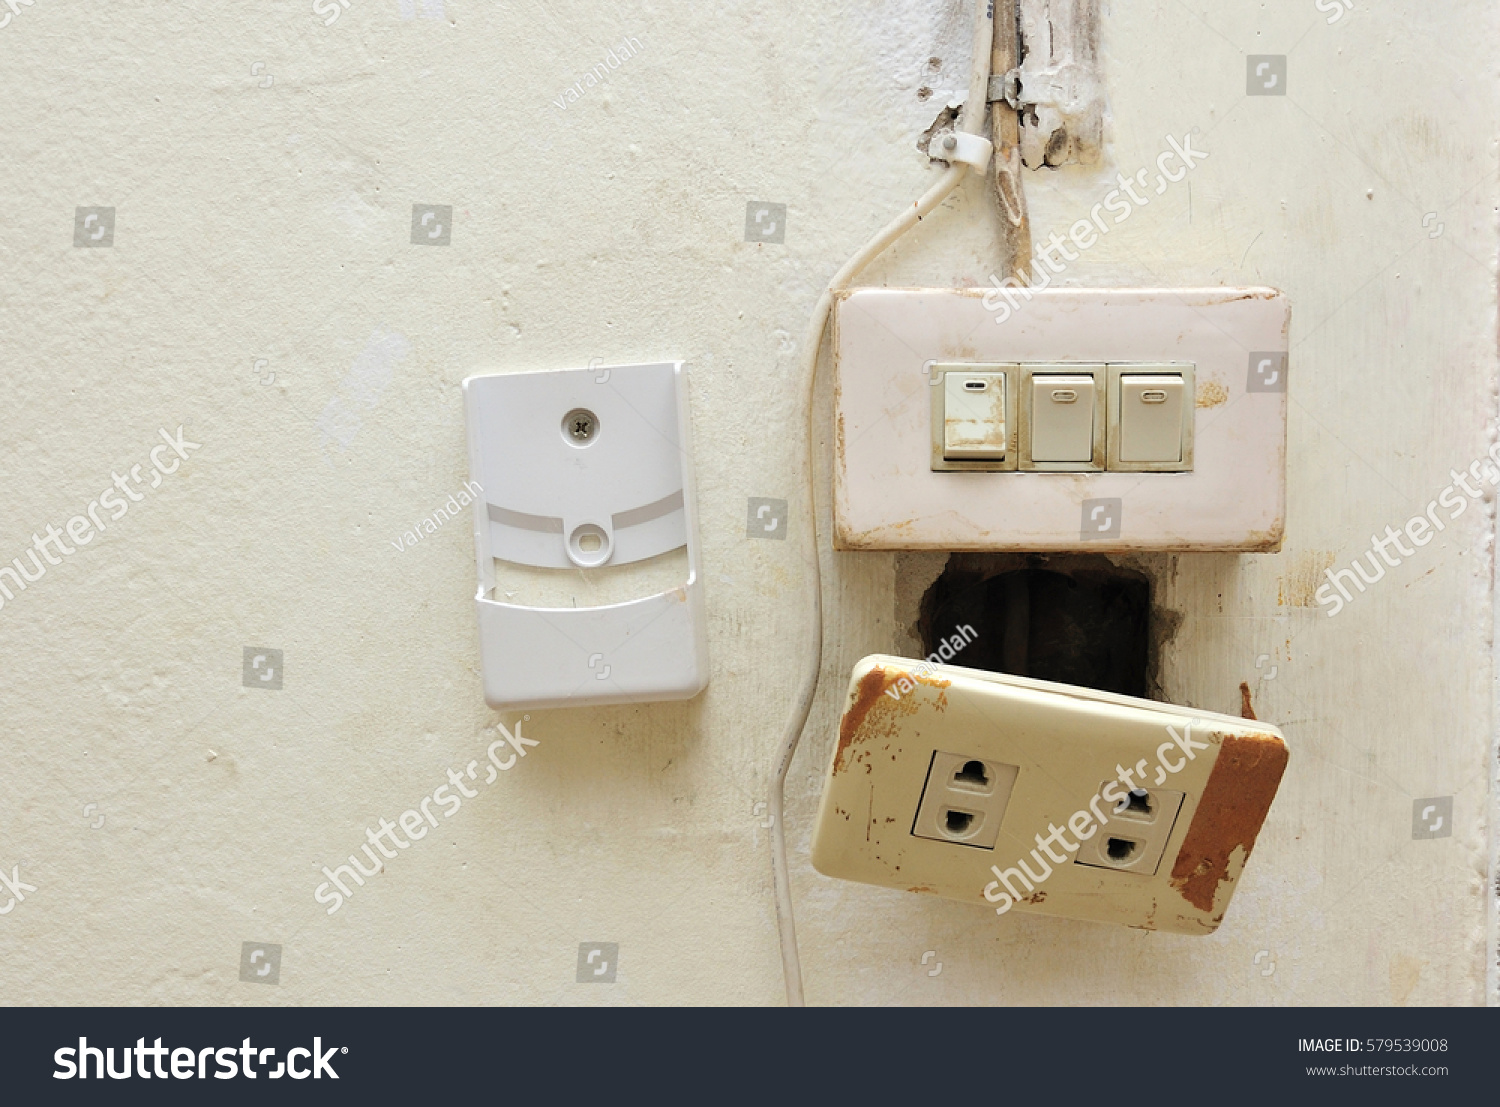 Light Switch Electrical Socket Damaged Stock Photo Edit Now Ac Wiring A And With On The Wall